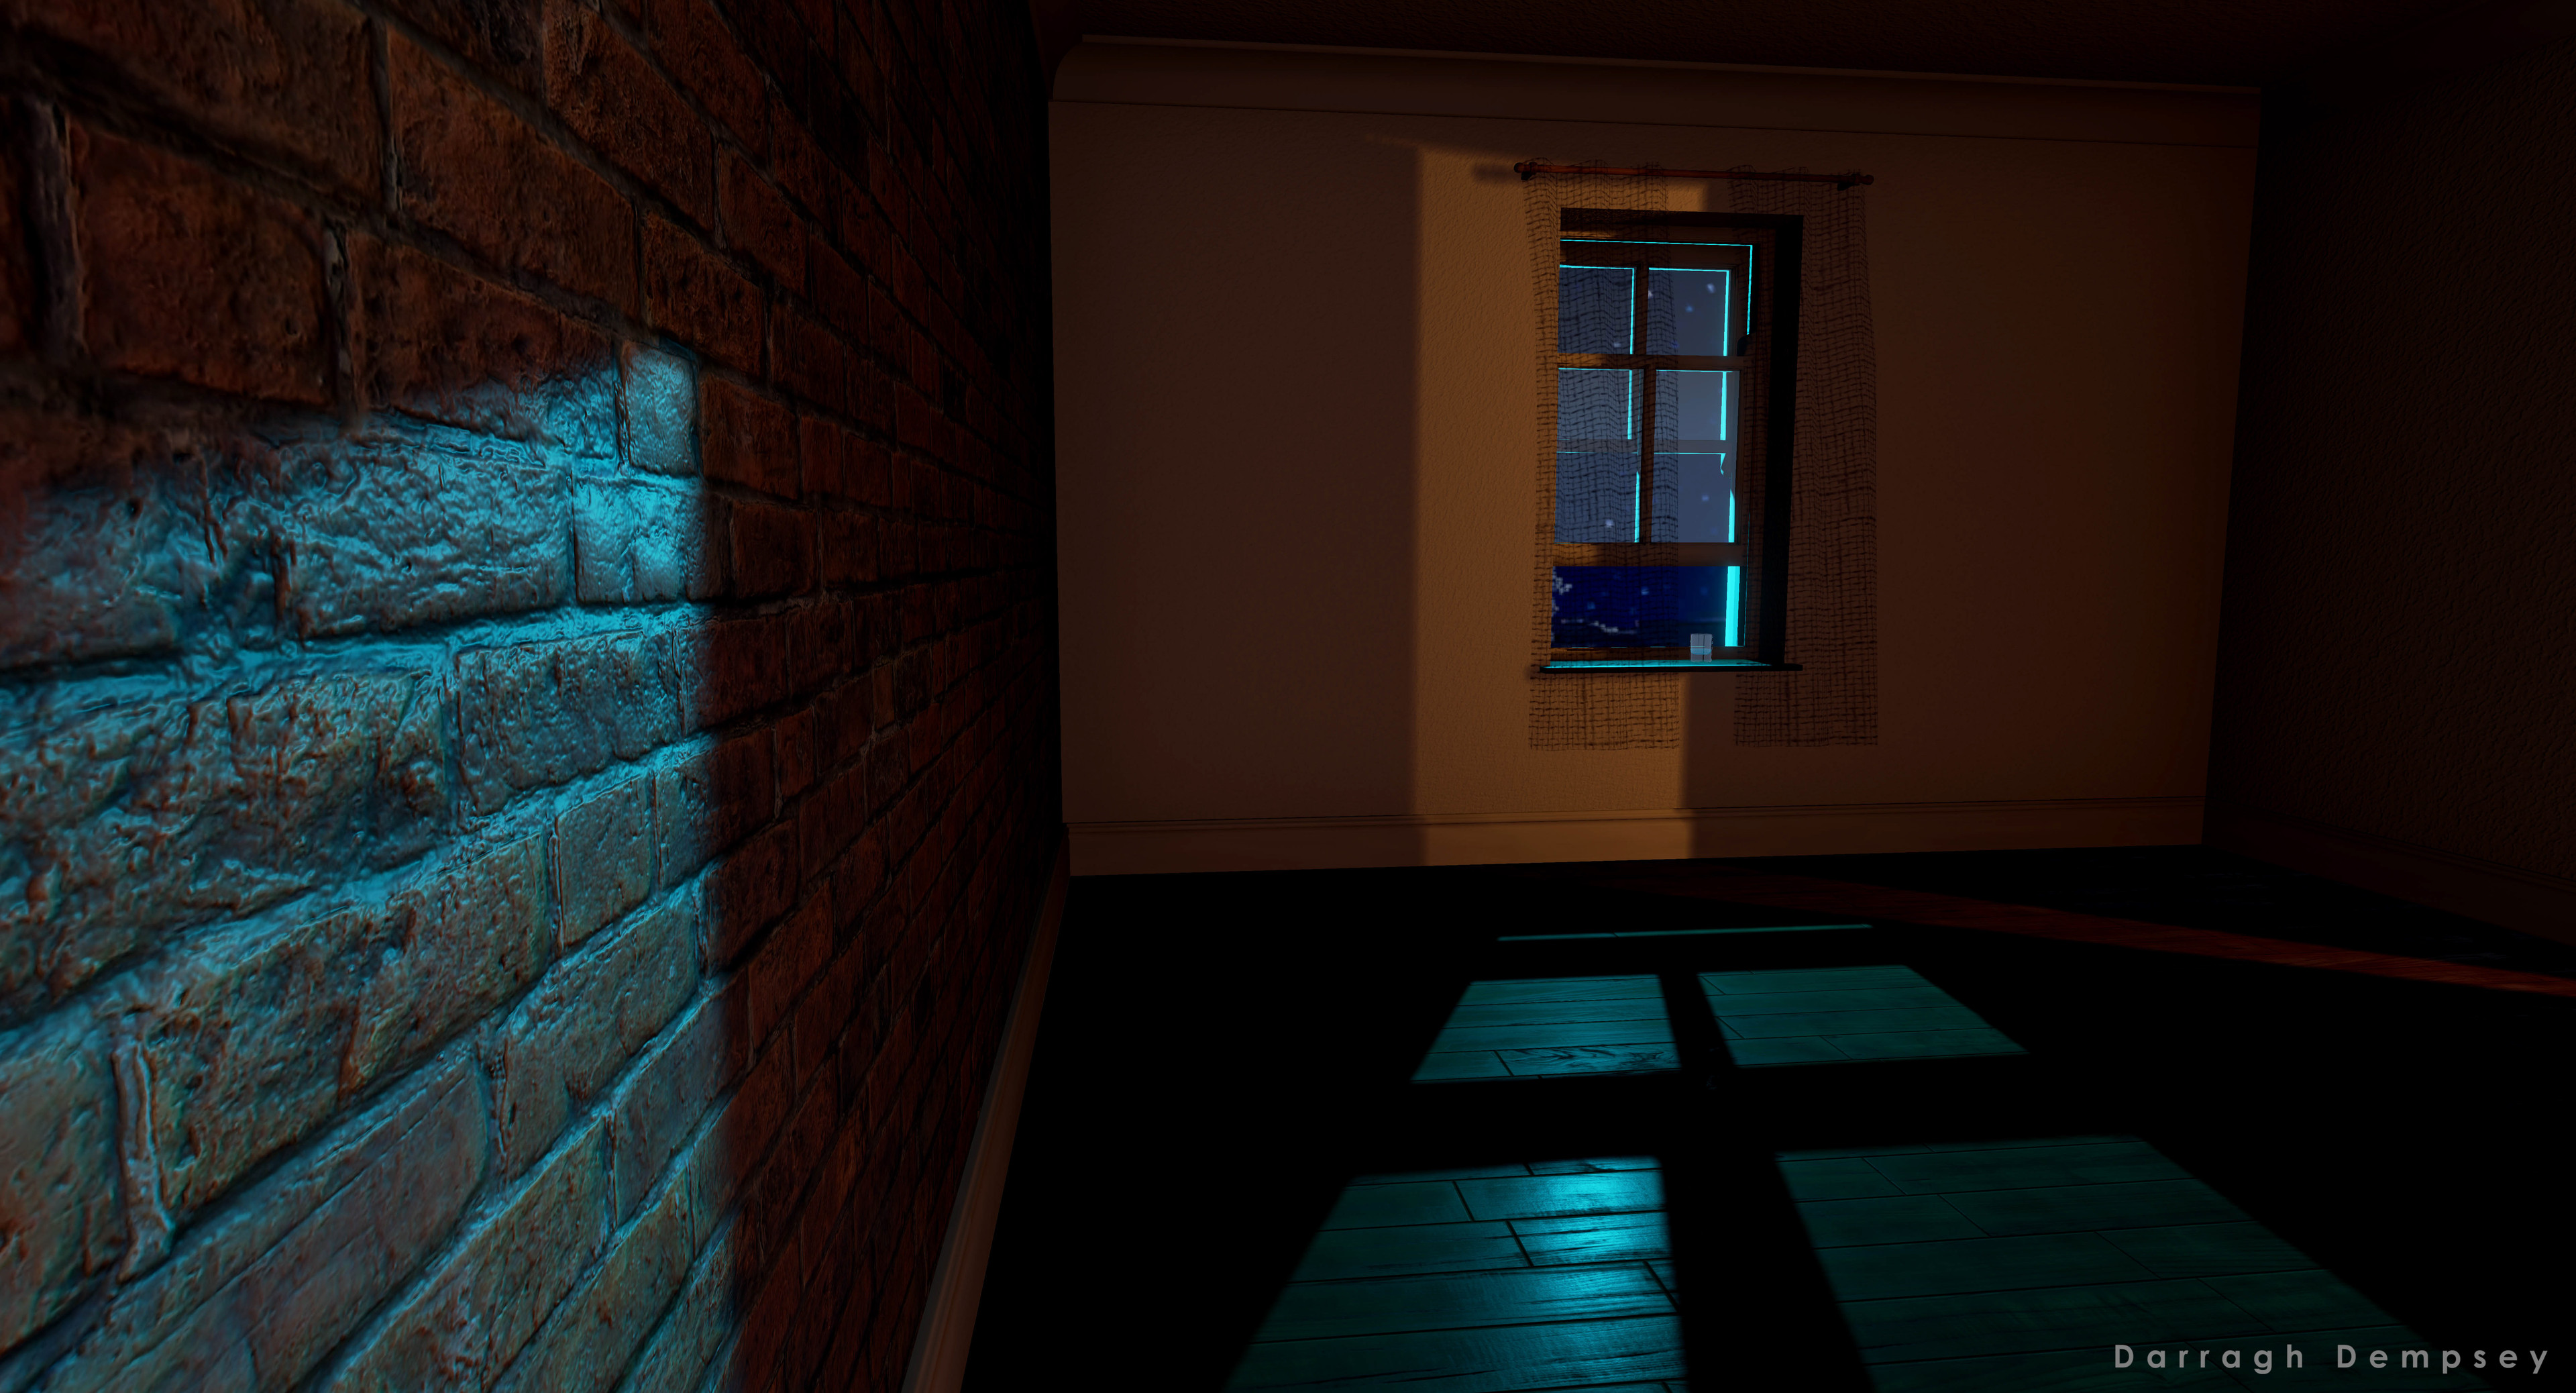 Unreal Engine screenshot. Moonlight through sash window. Light spill from door.